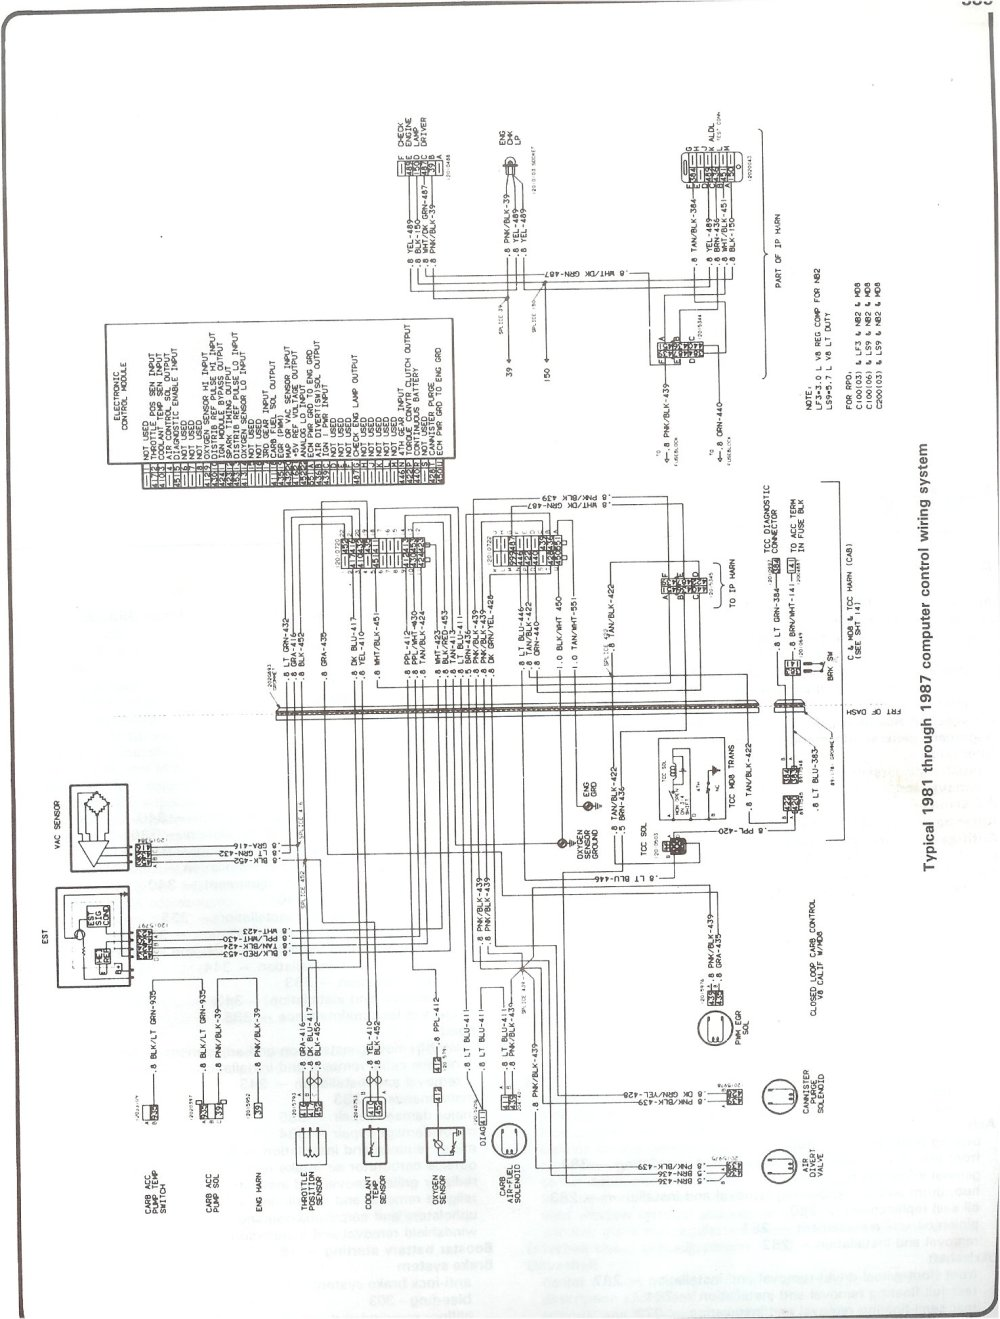 medium resolution of 1975 chevy p30 wiring diagram data wiring schema 63 chevy wiring diagram 1974 chevrolet wiring diagram